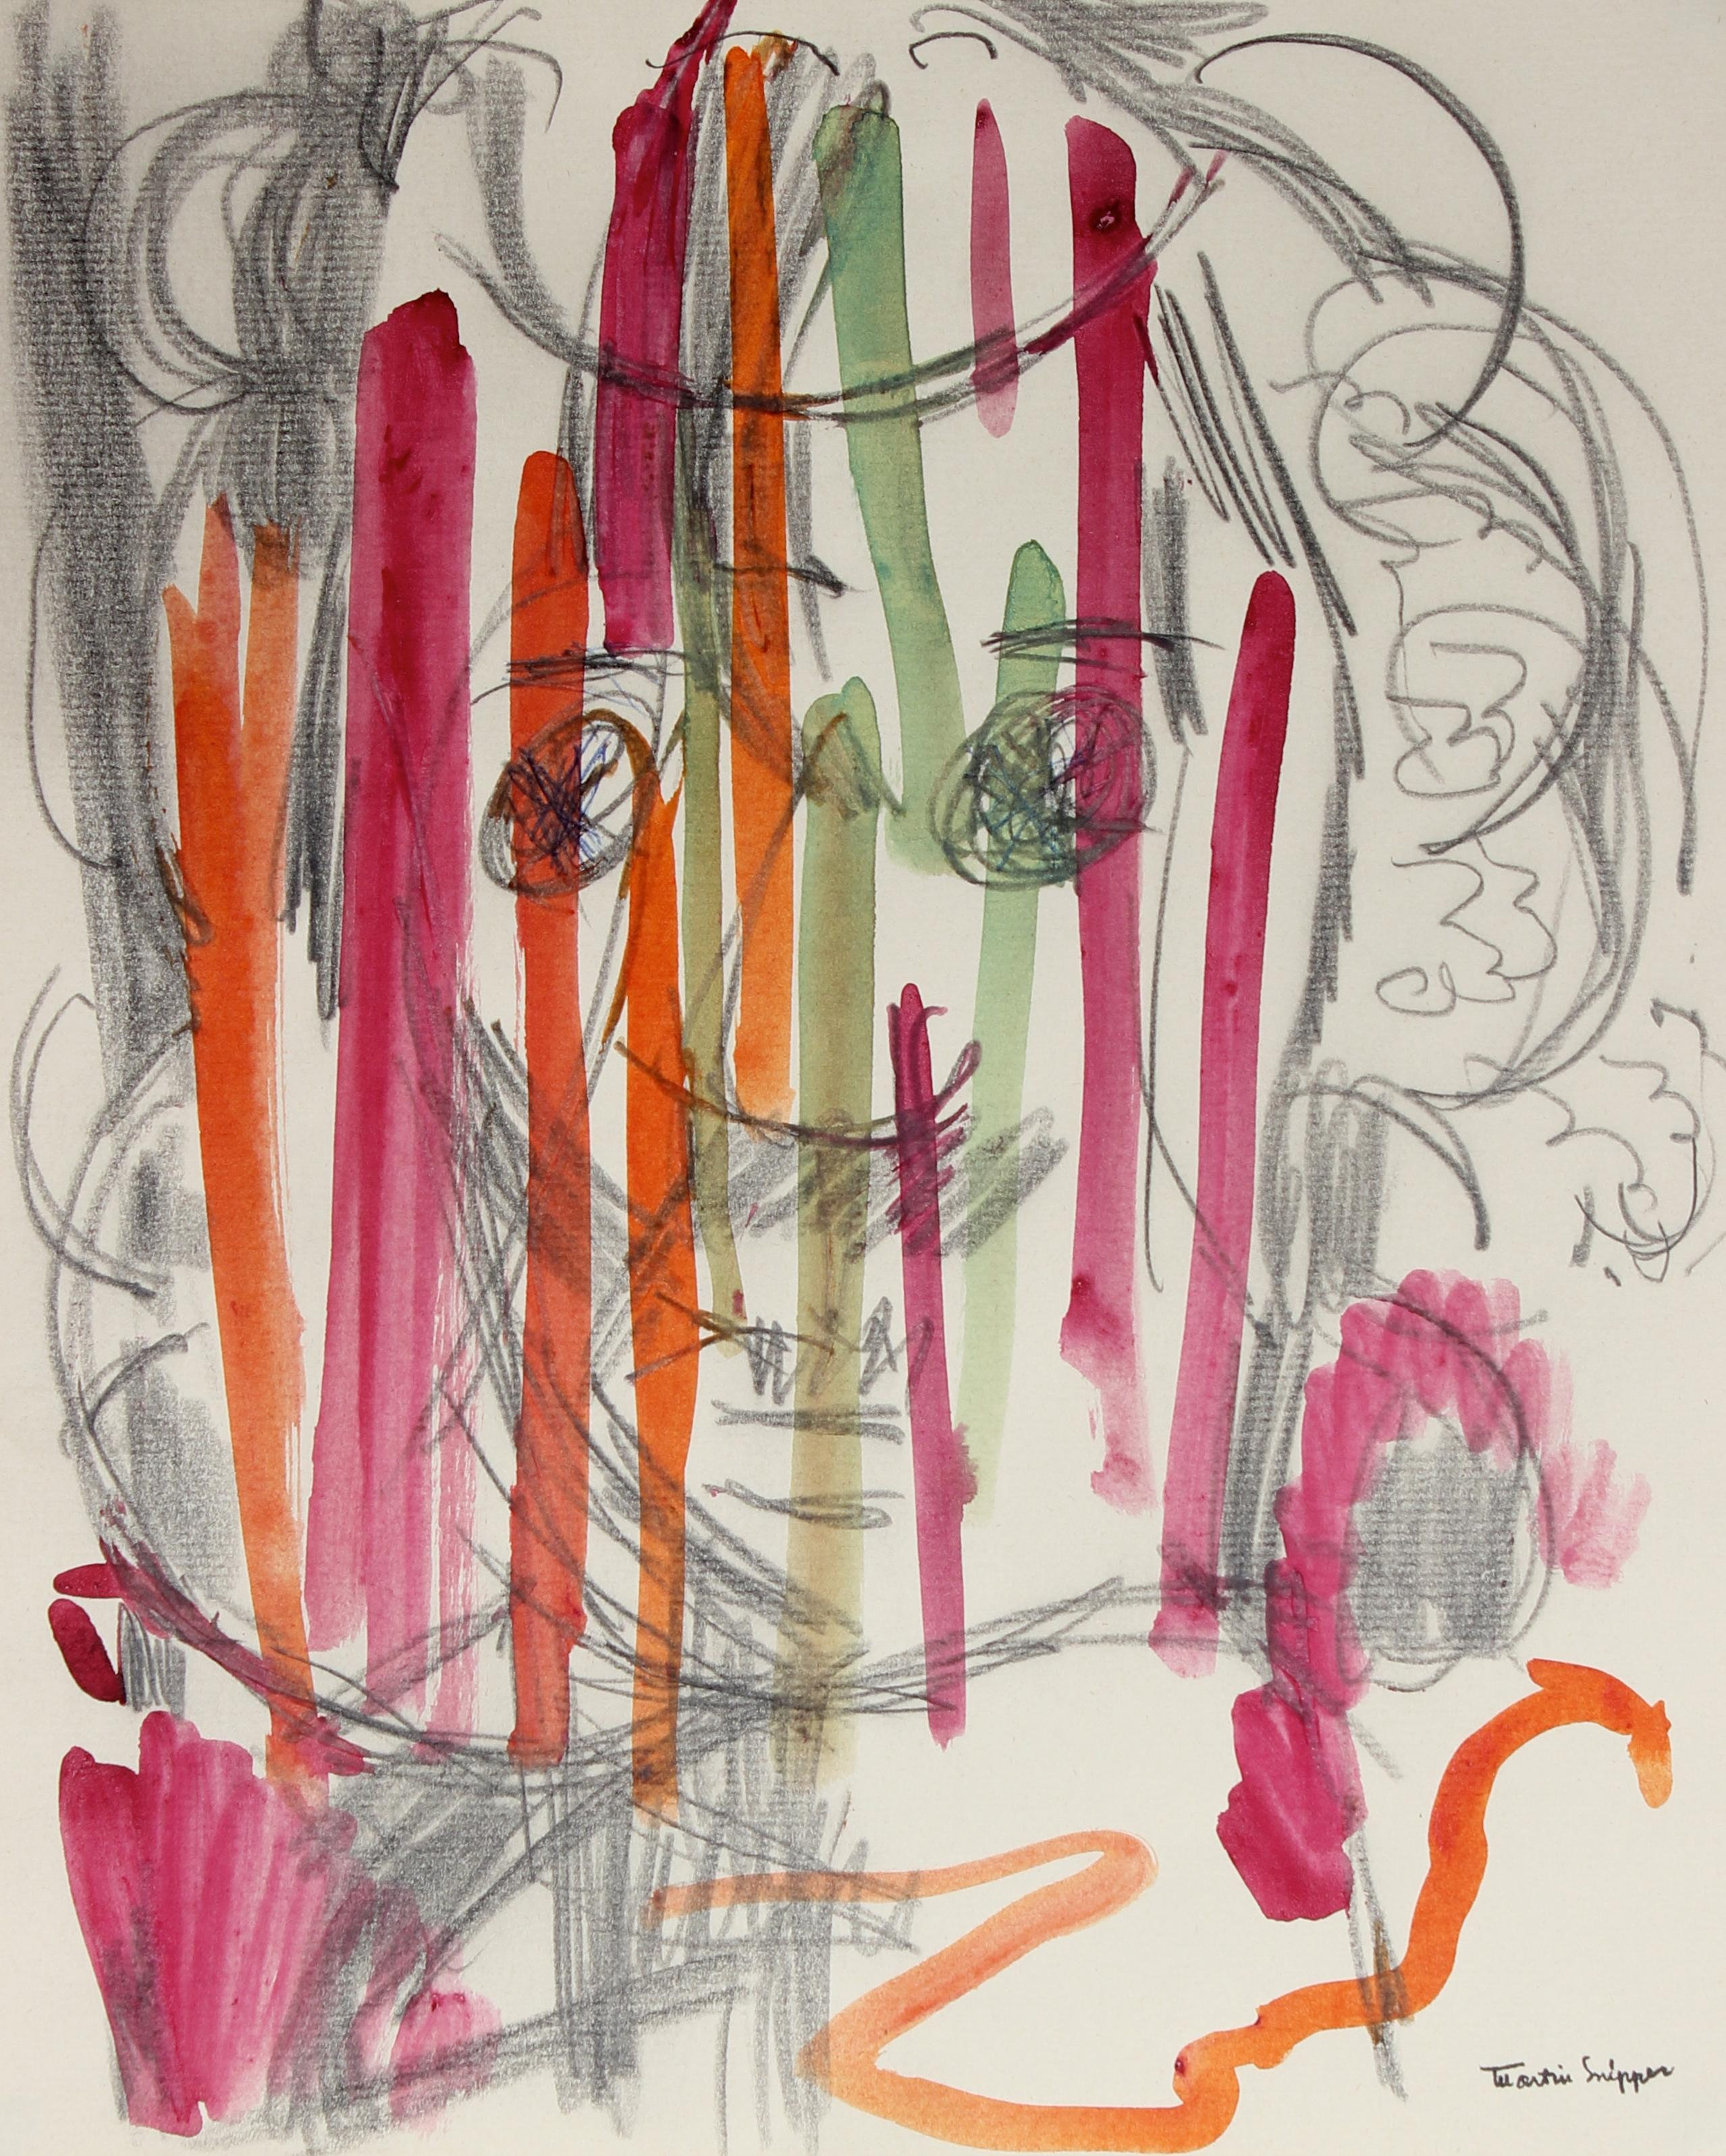 Monochromatic Portrait Abstracted By Color Mid Century Graphite & Watercolor